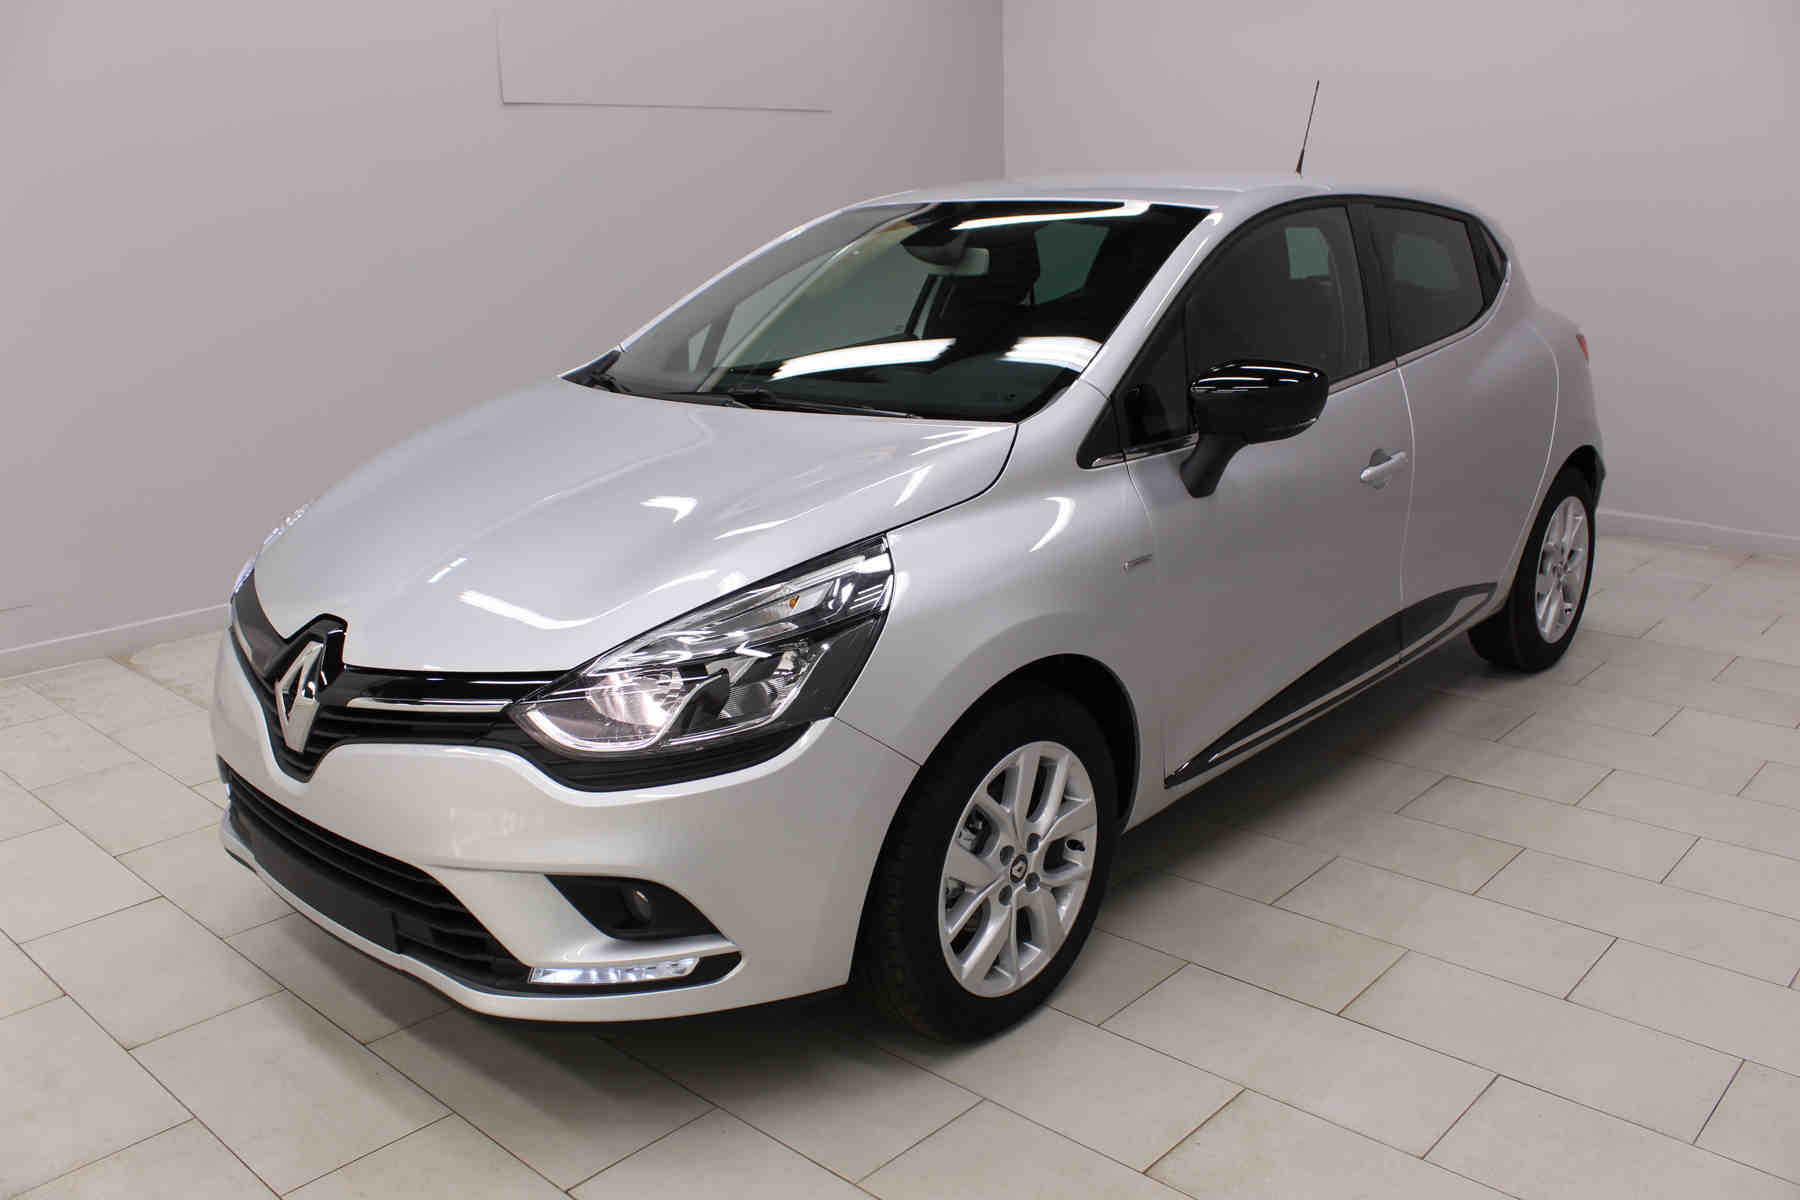 Acheter RENAULT Clio TCe 75 E6C Limited Gris Platine + Media Nav Evolution + Pack City avec options chez un mandataire auto